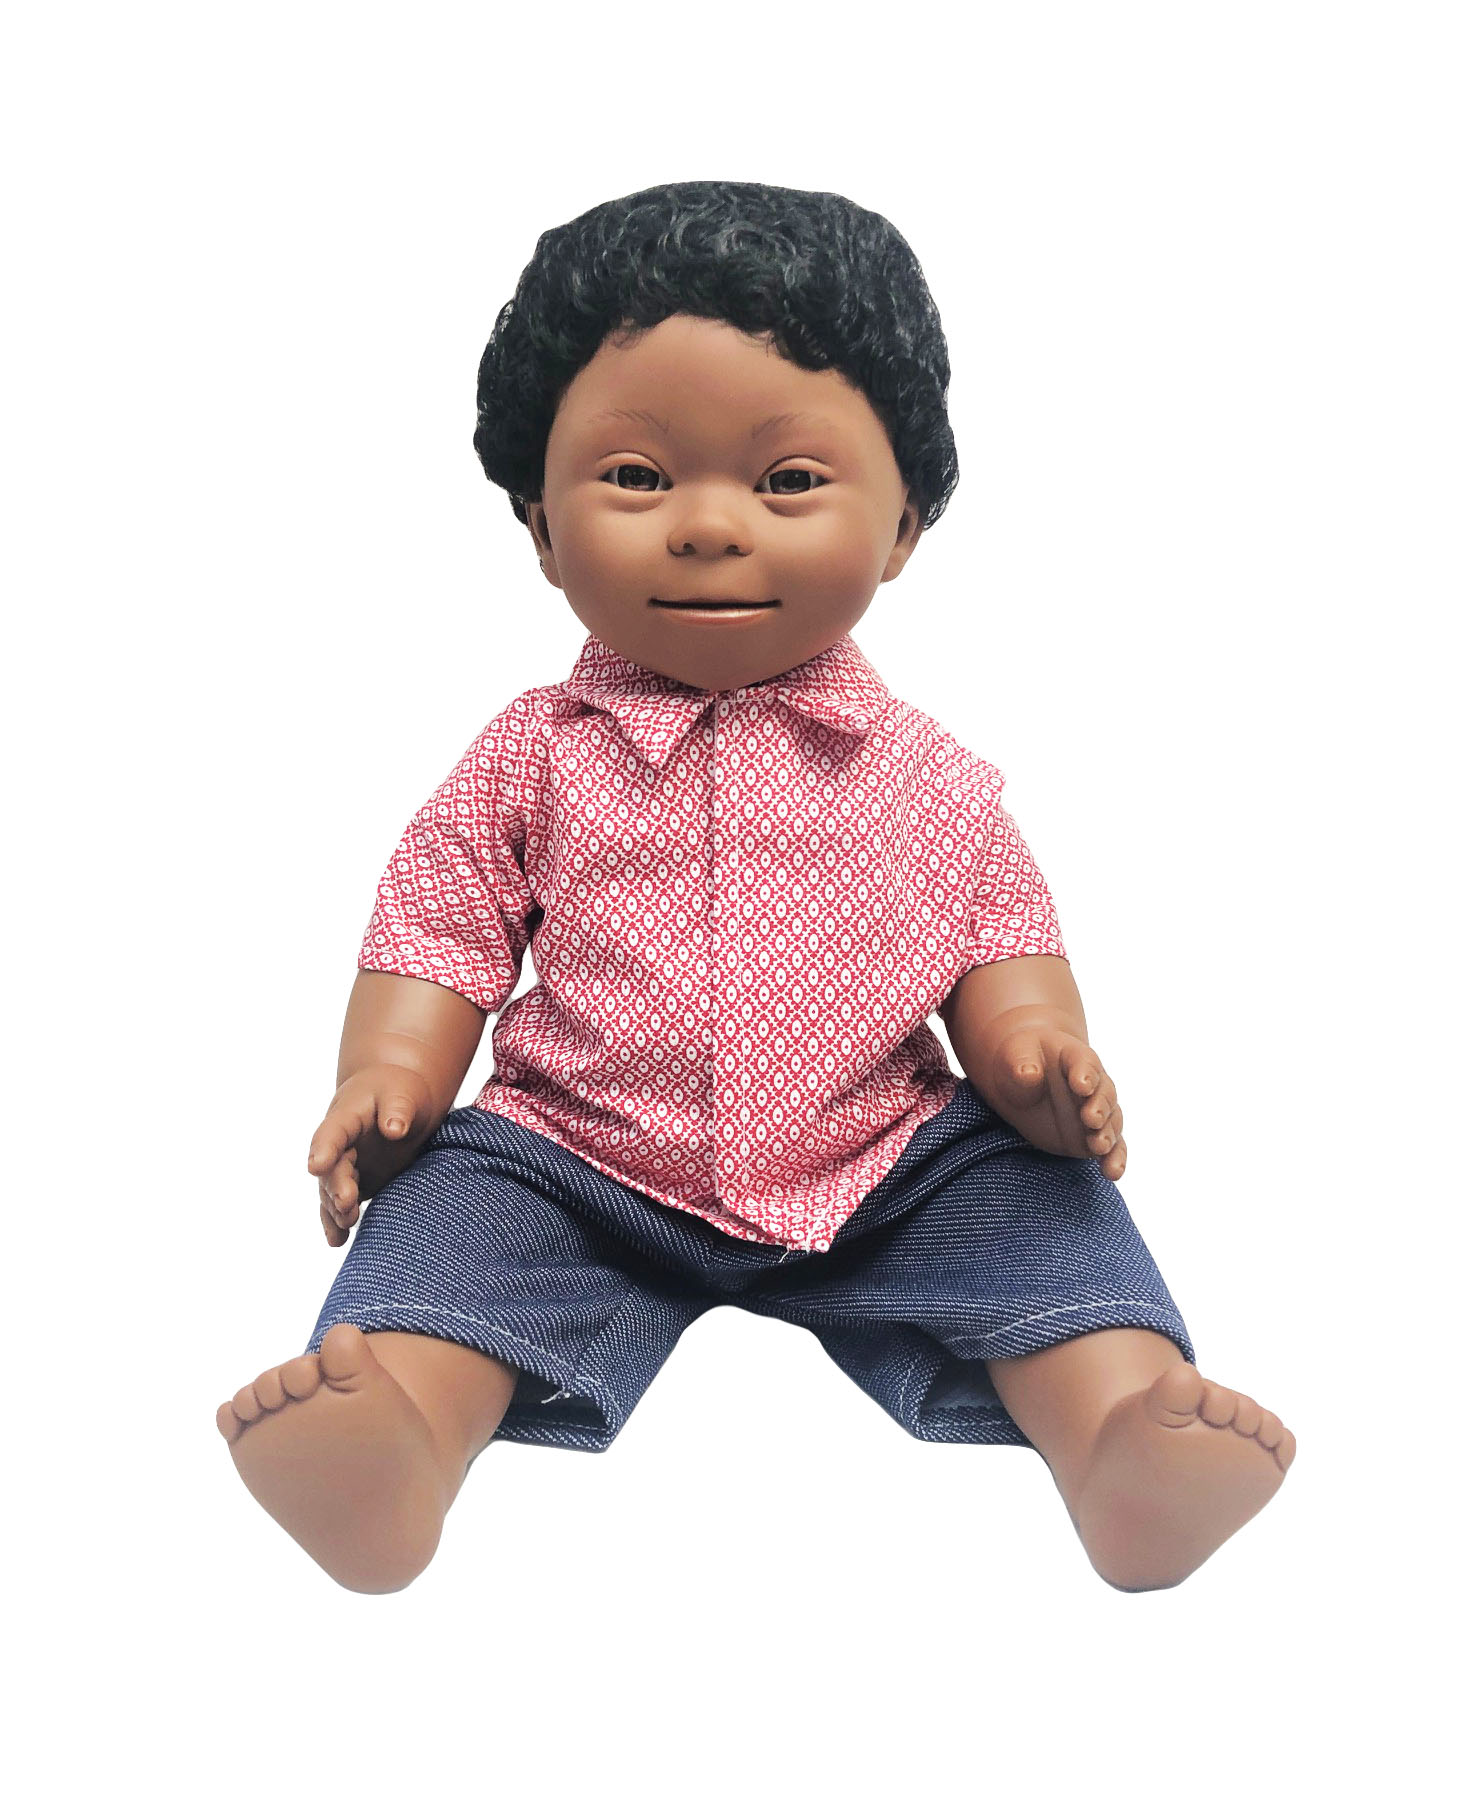 African Boy - Down Syndrome Doll